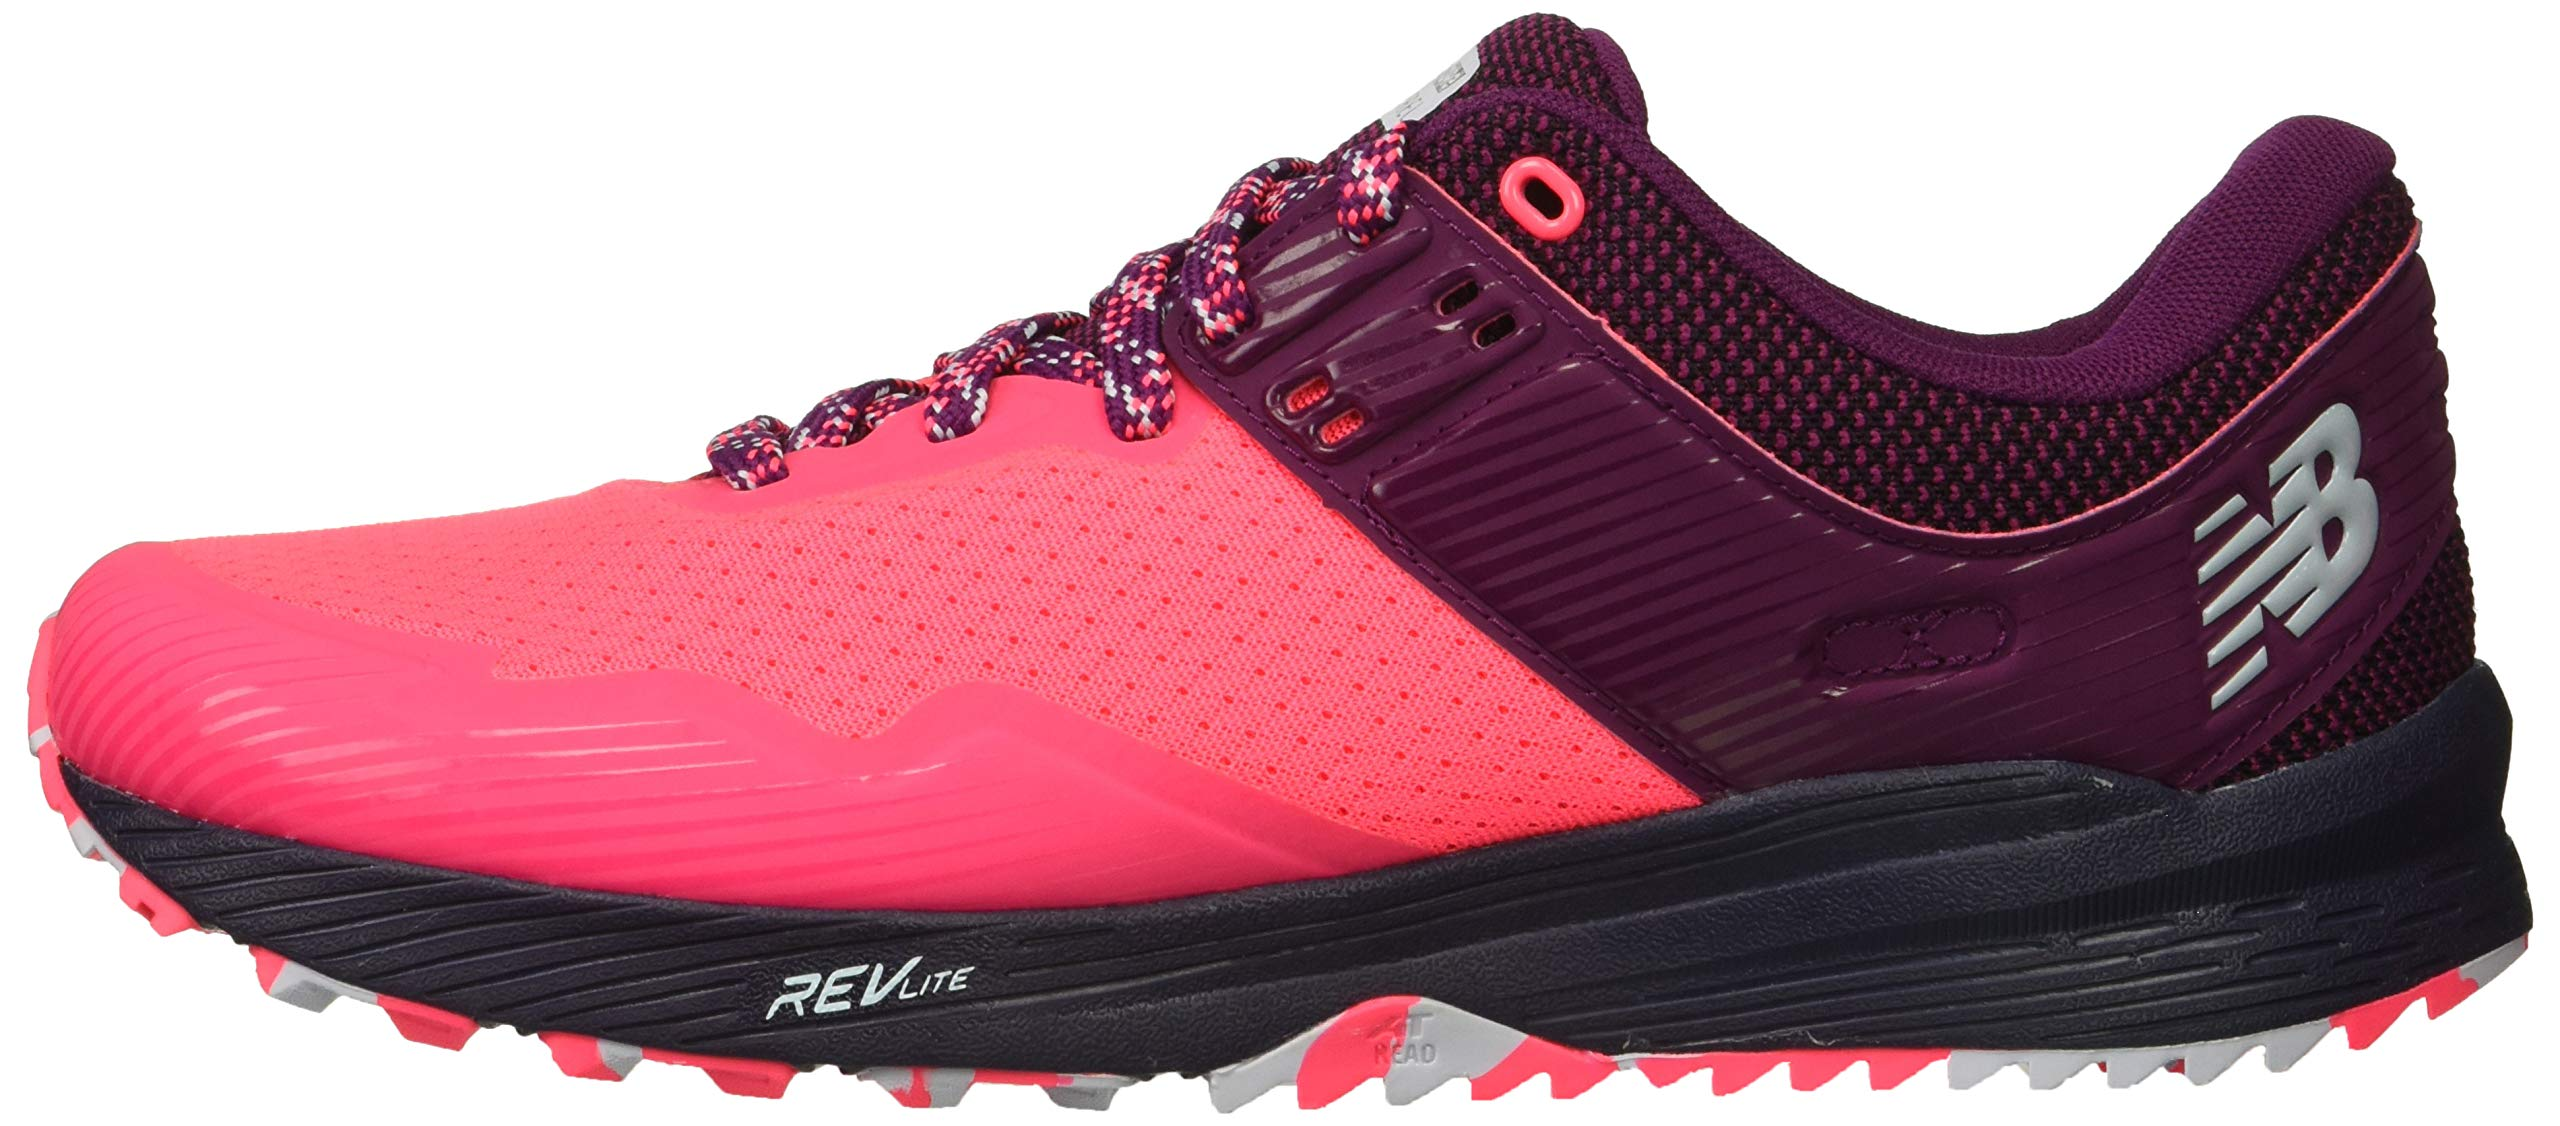 New Balance Women's Nitrel V2 FuelCore Trail Running Shoe Pink zing/Claret/Pigment 5 B US by New Balance (Image #5)